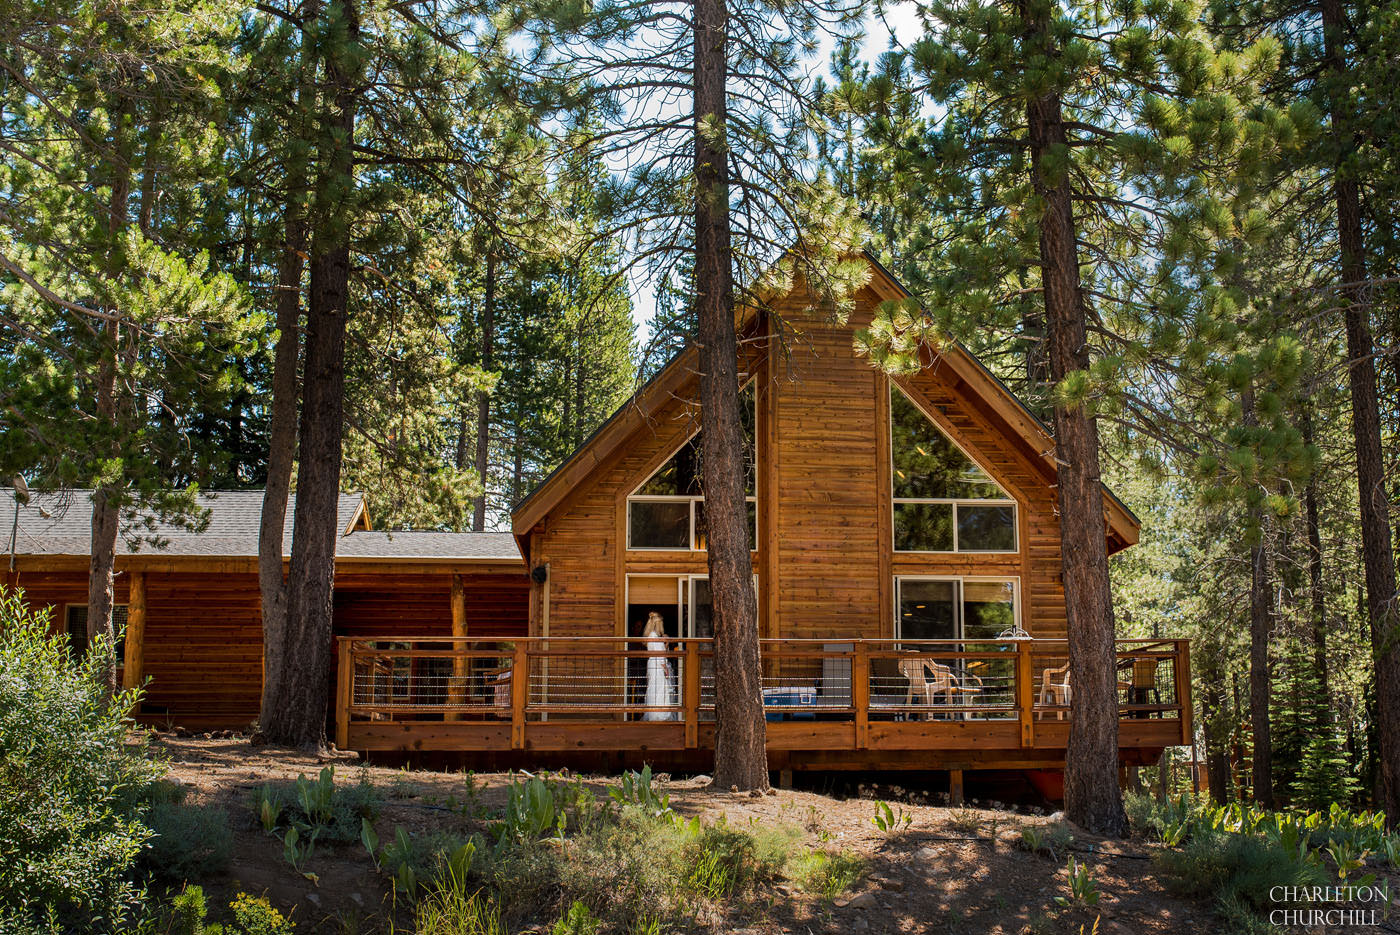 rustic tahoe cabin in the woods with bride getting ready to marry in truckee lodge